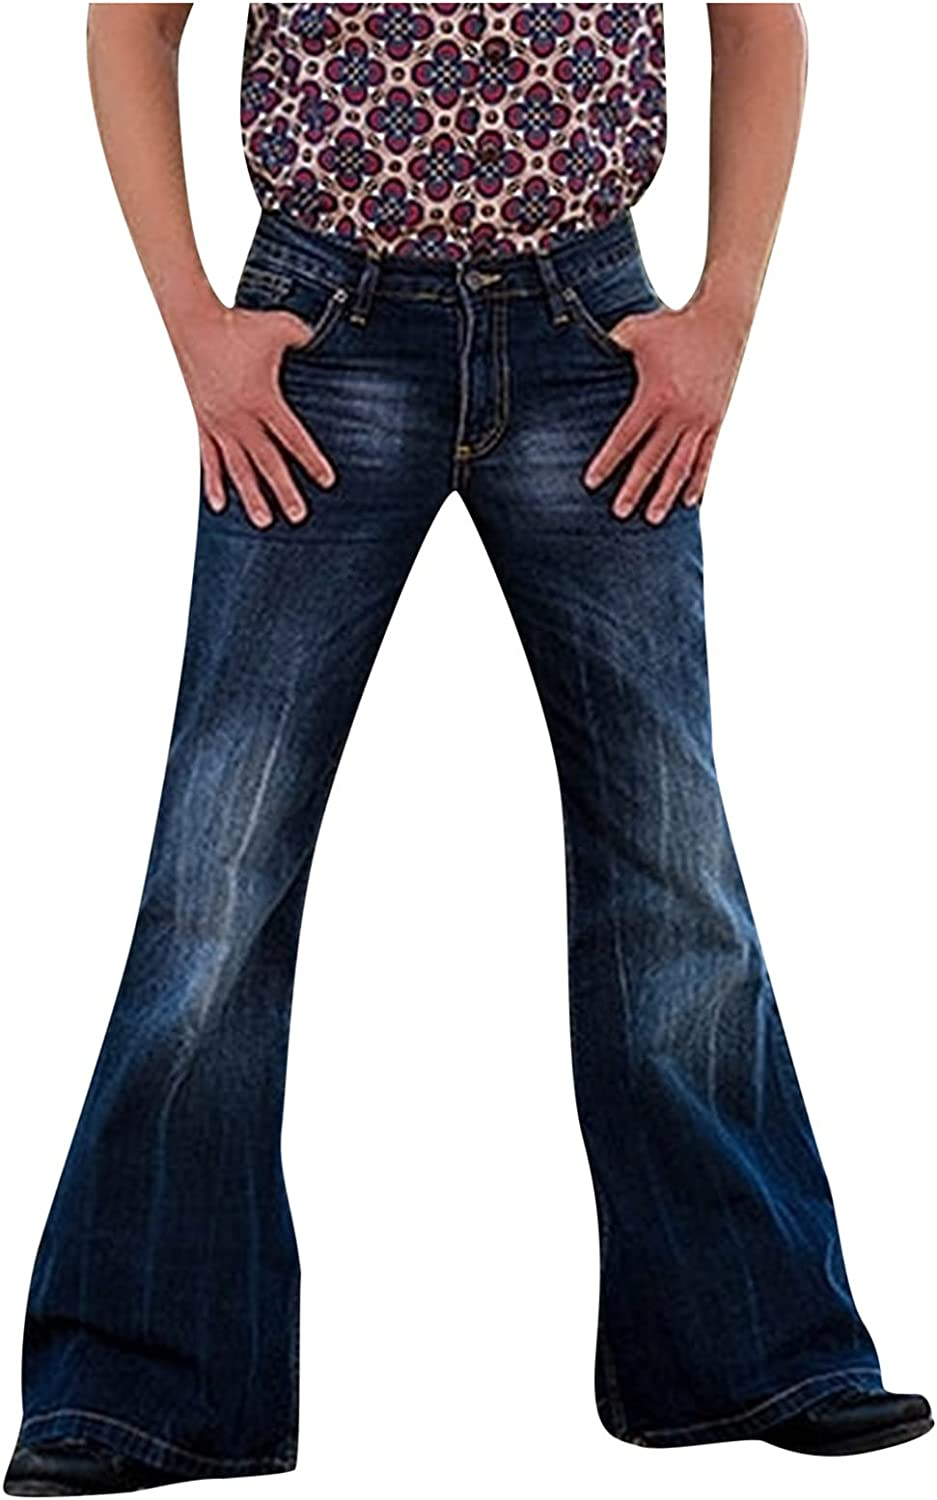 Men's Vintage Stretch Bottom Fit Classic Relaxed Flared Retro Disco Denim Jeans